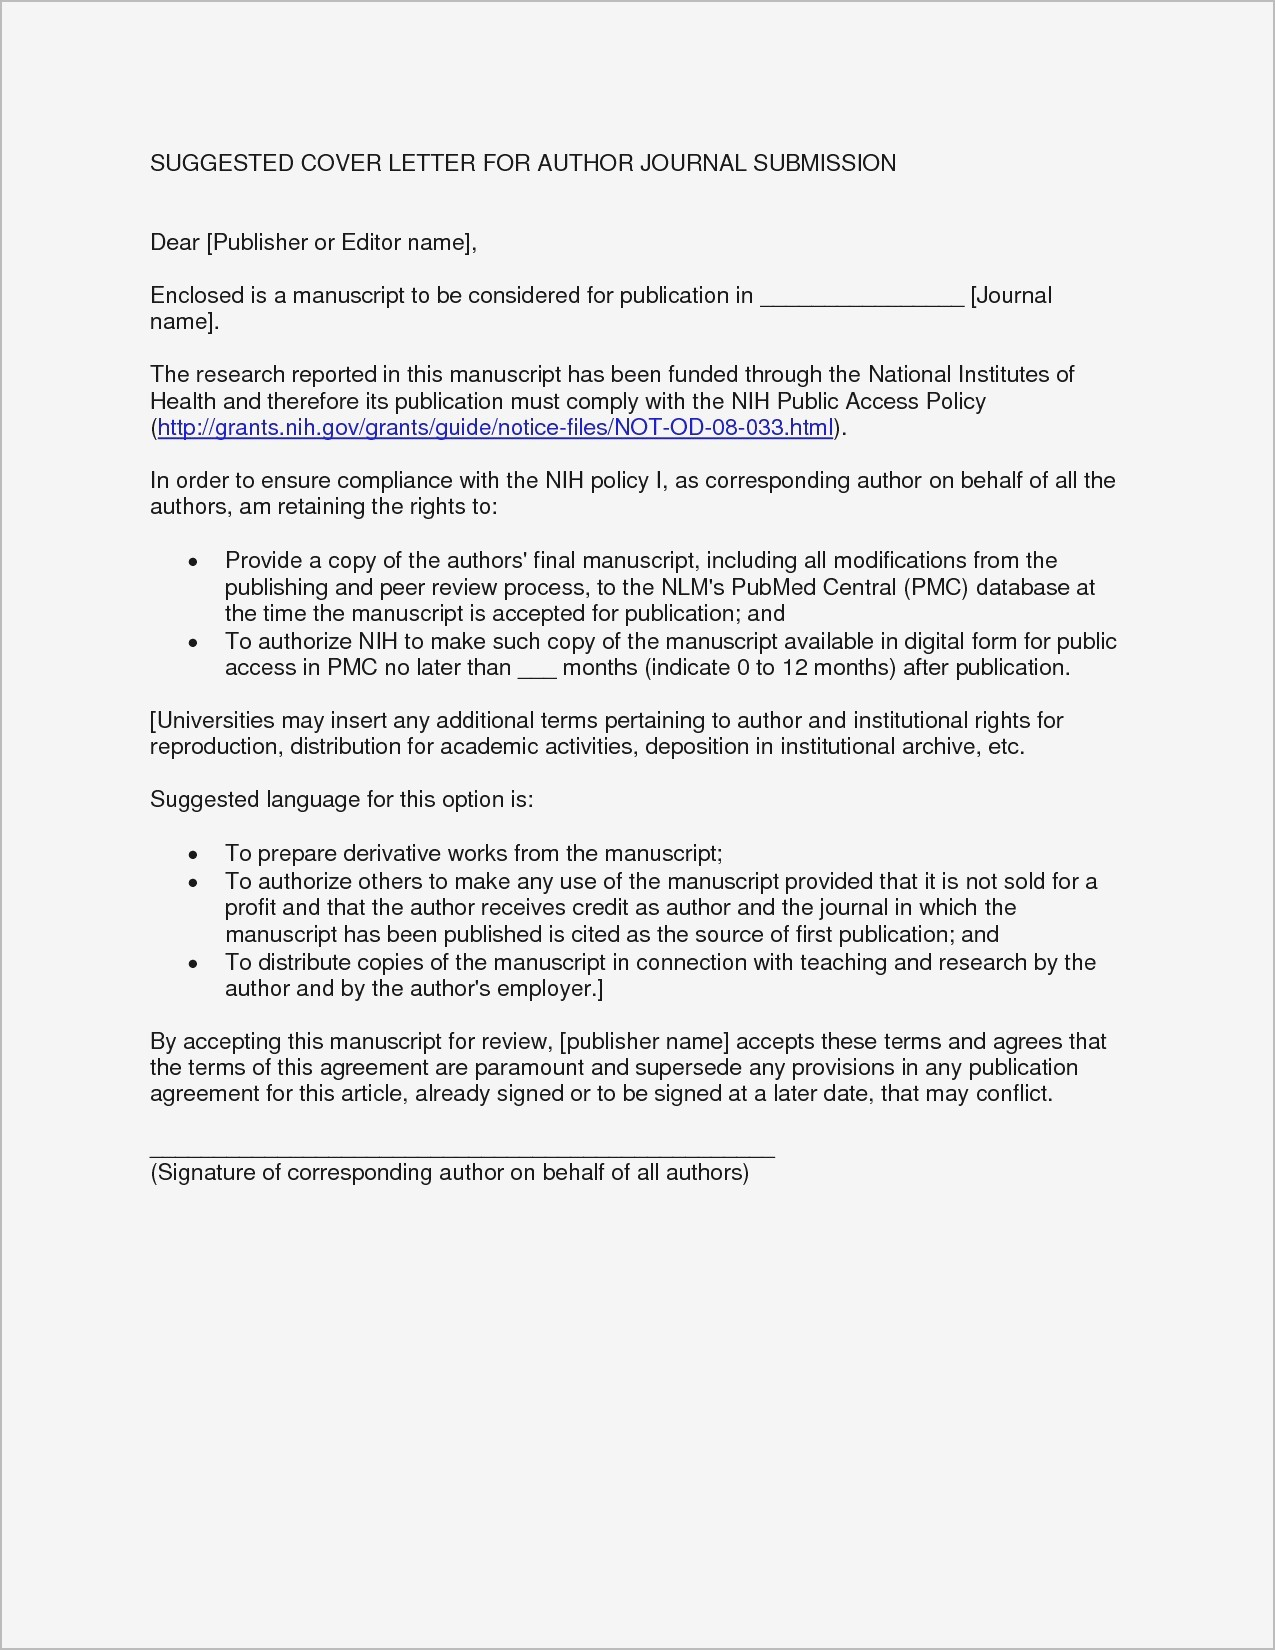 Cover Letter Template Pdf - Writing Business Requirements Template Best Fax Cover Letter